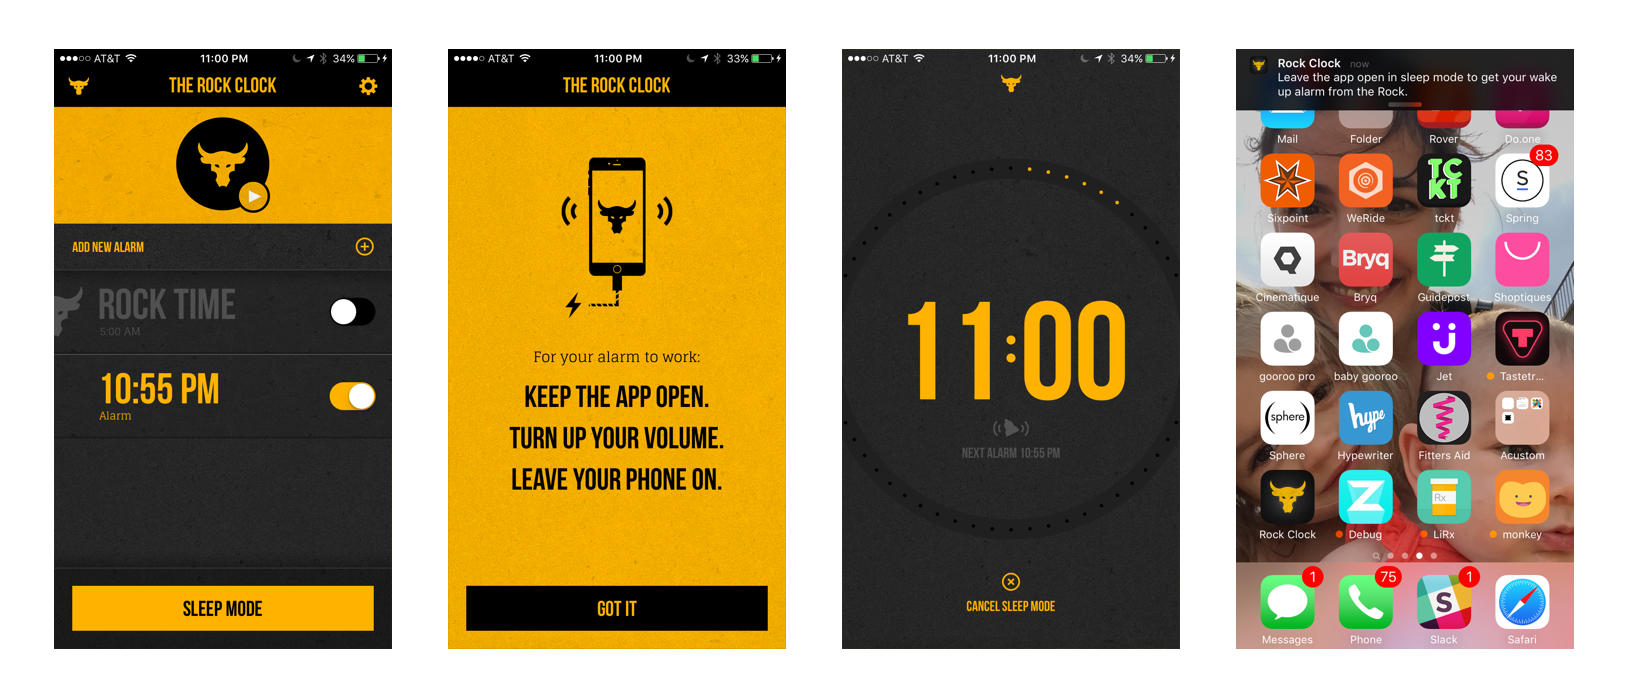 Why The Rock Clock™ iOS app must stay on all night…